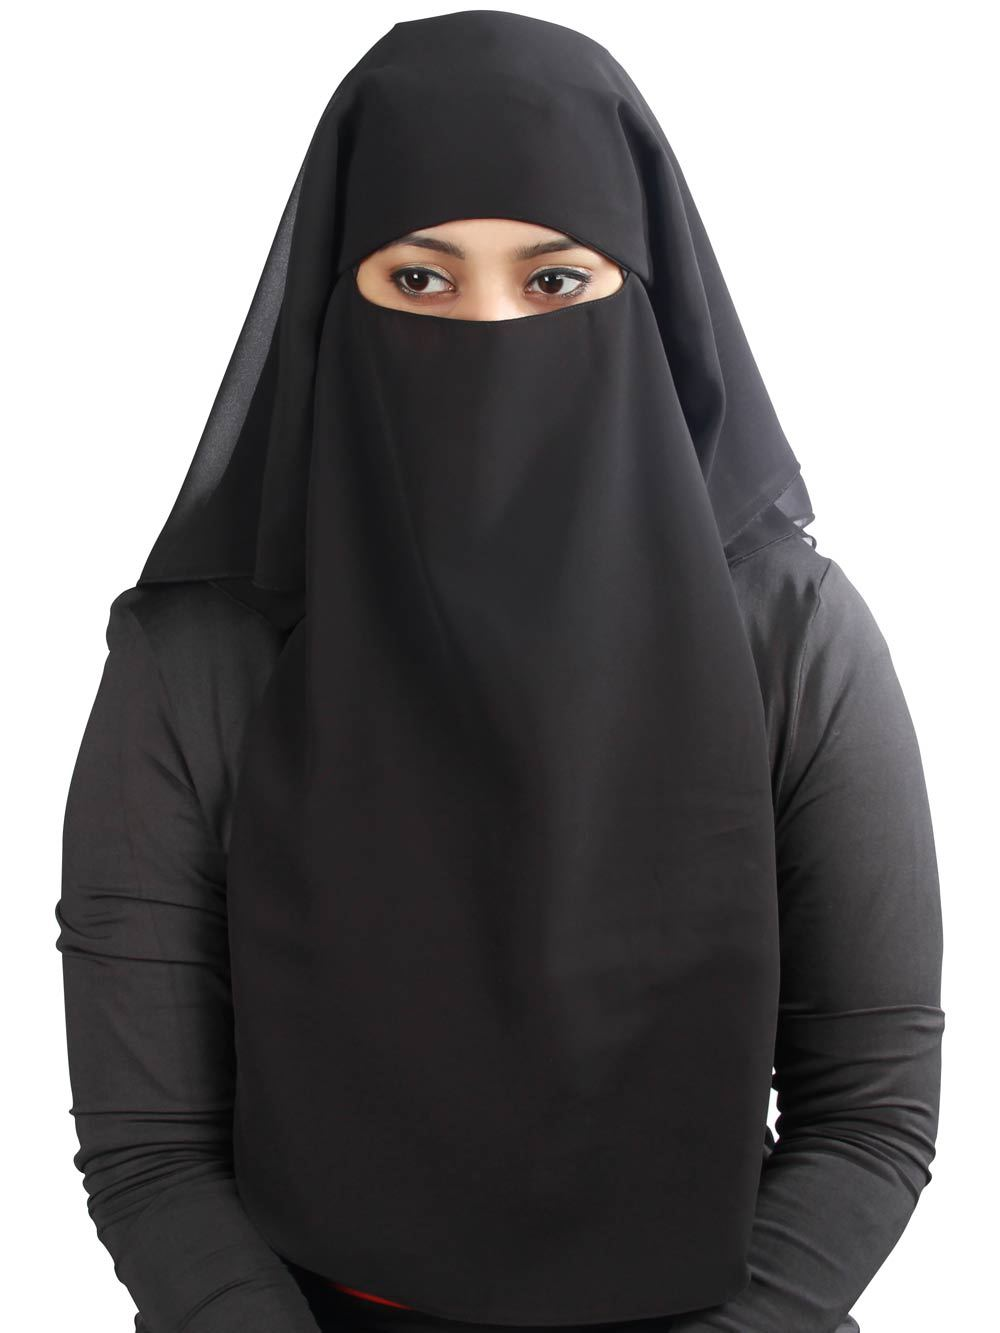 3 Layers Niqab In Black Georgette